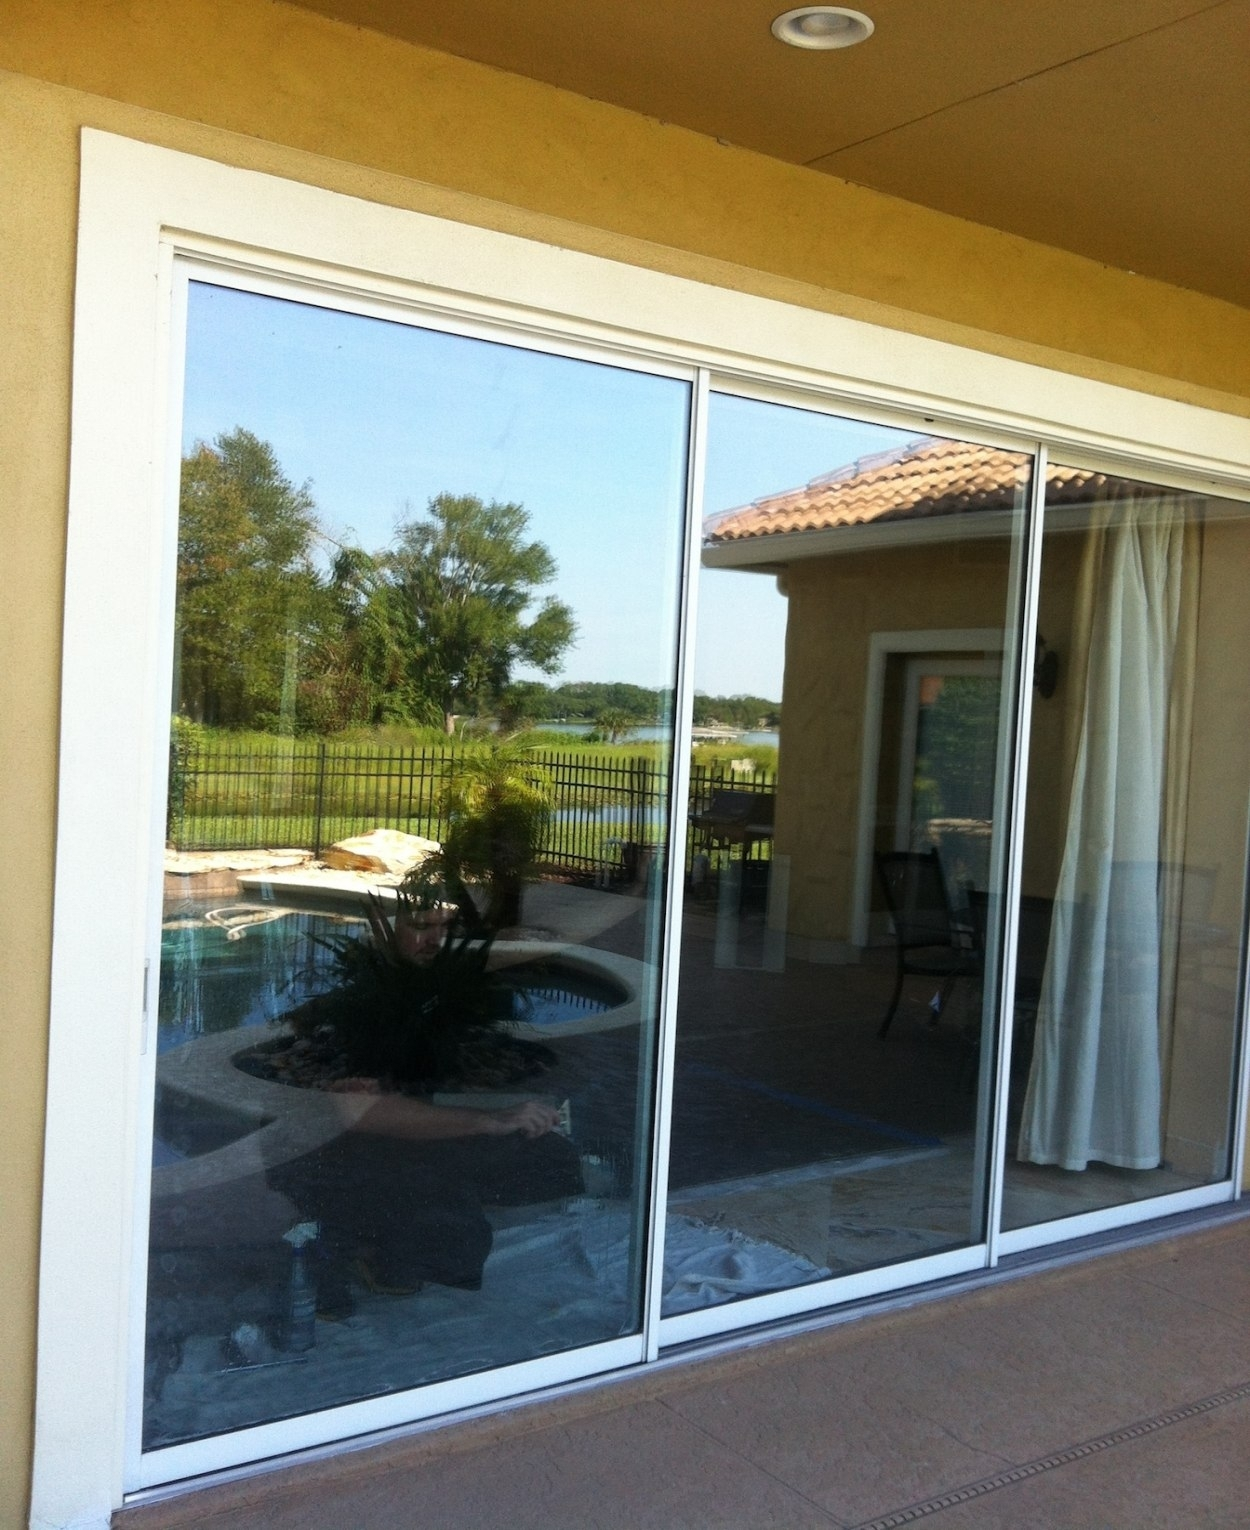 Sliding Glass Door Window Tintsliding glass door window tint whlmagazine door collections